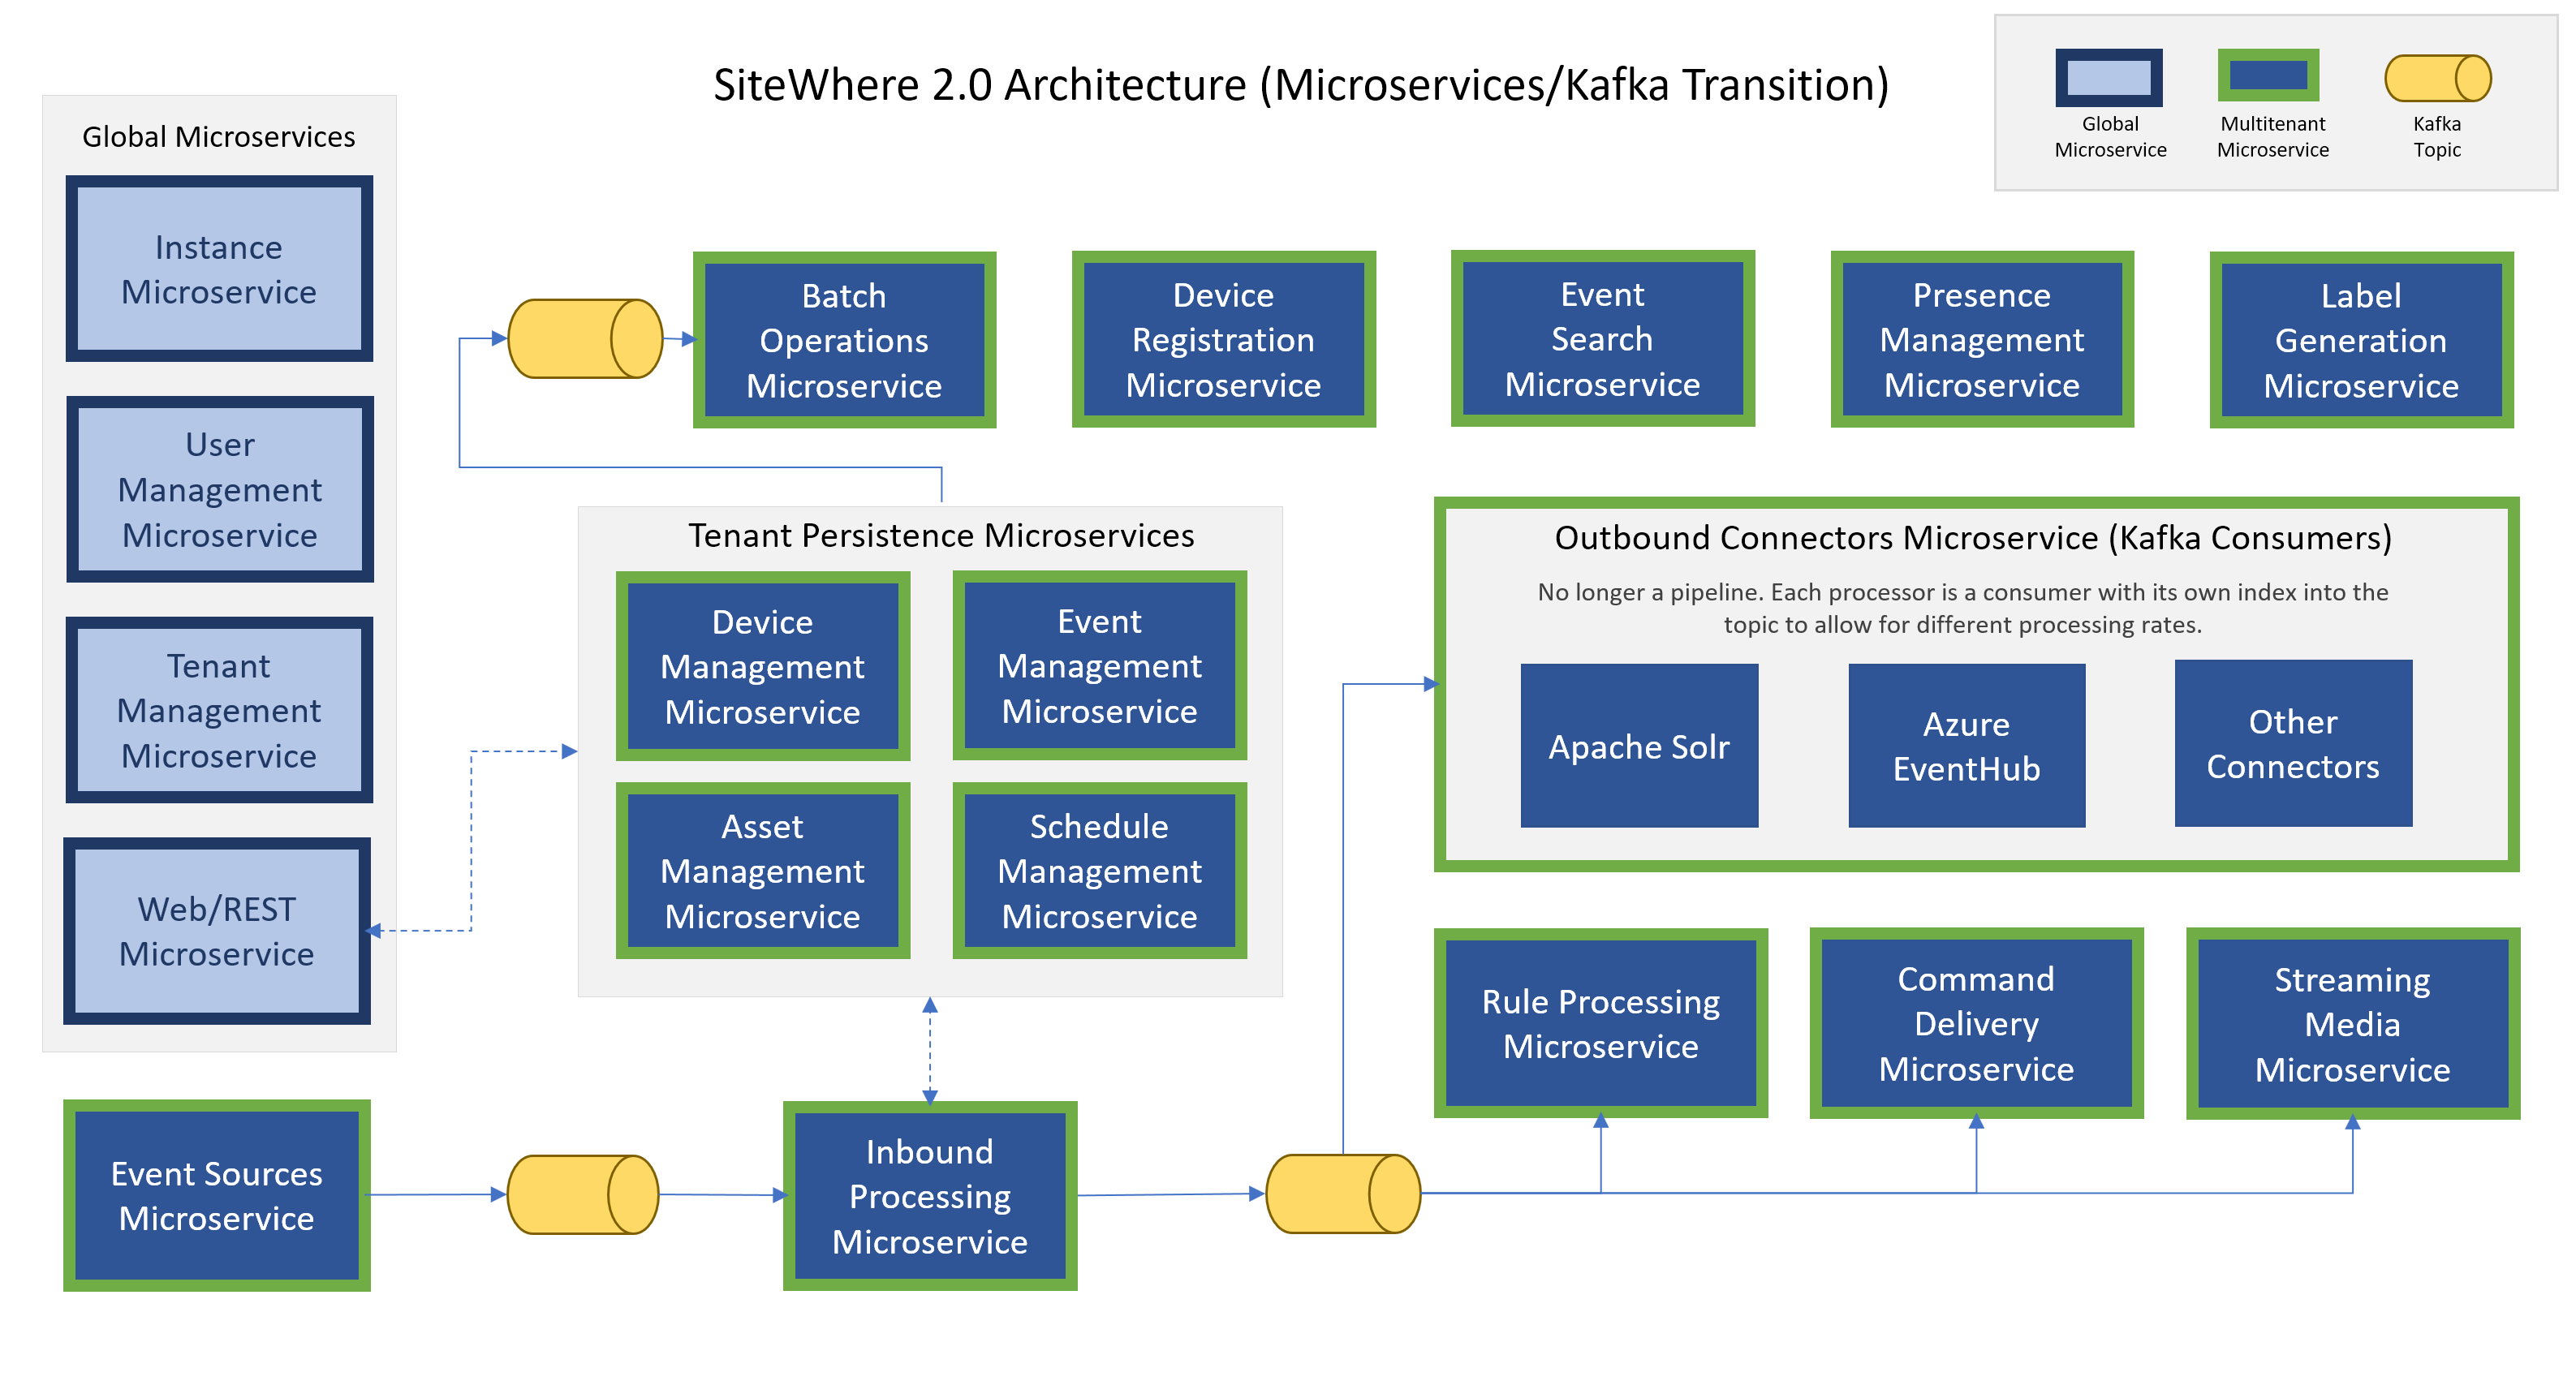 Microservices Overview | SiteWhere